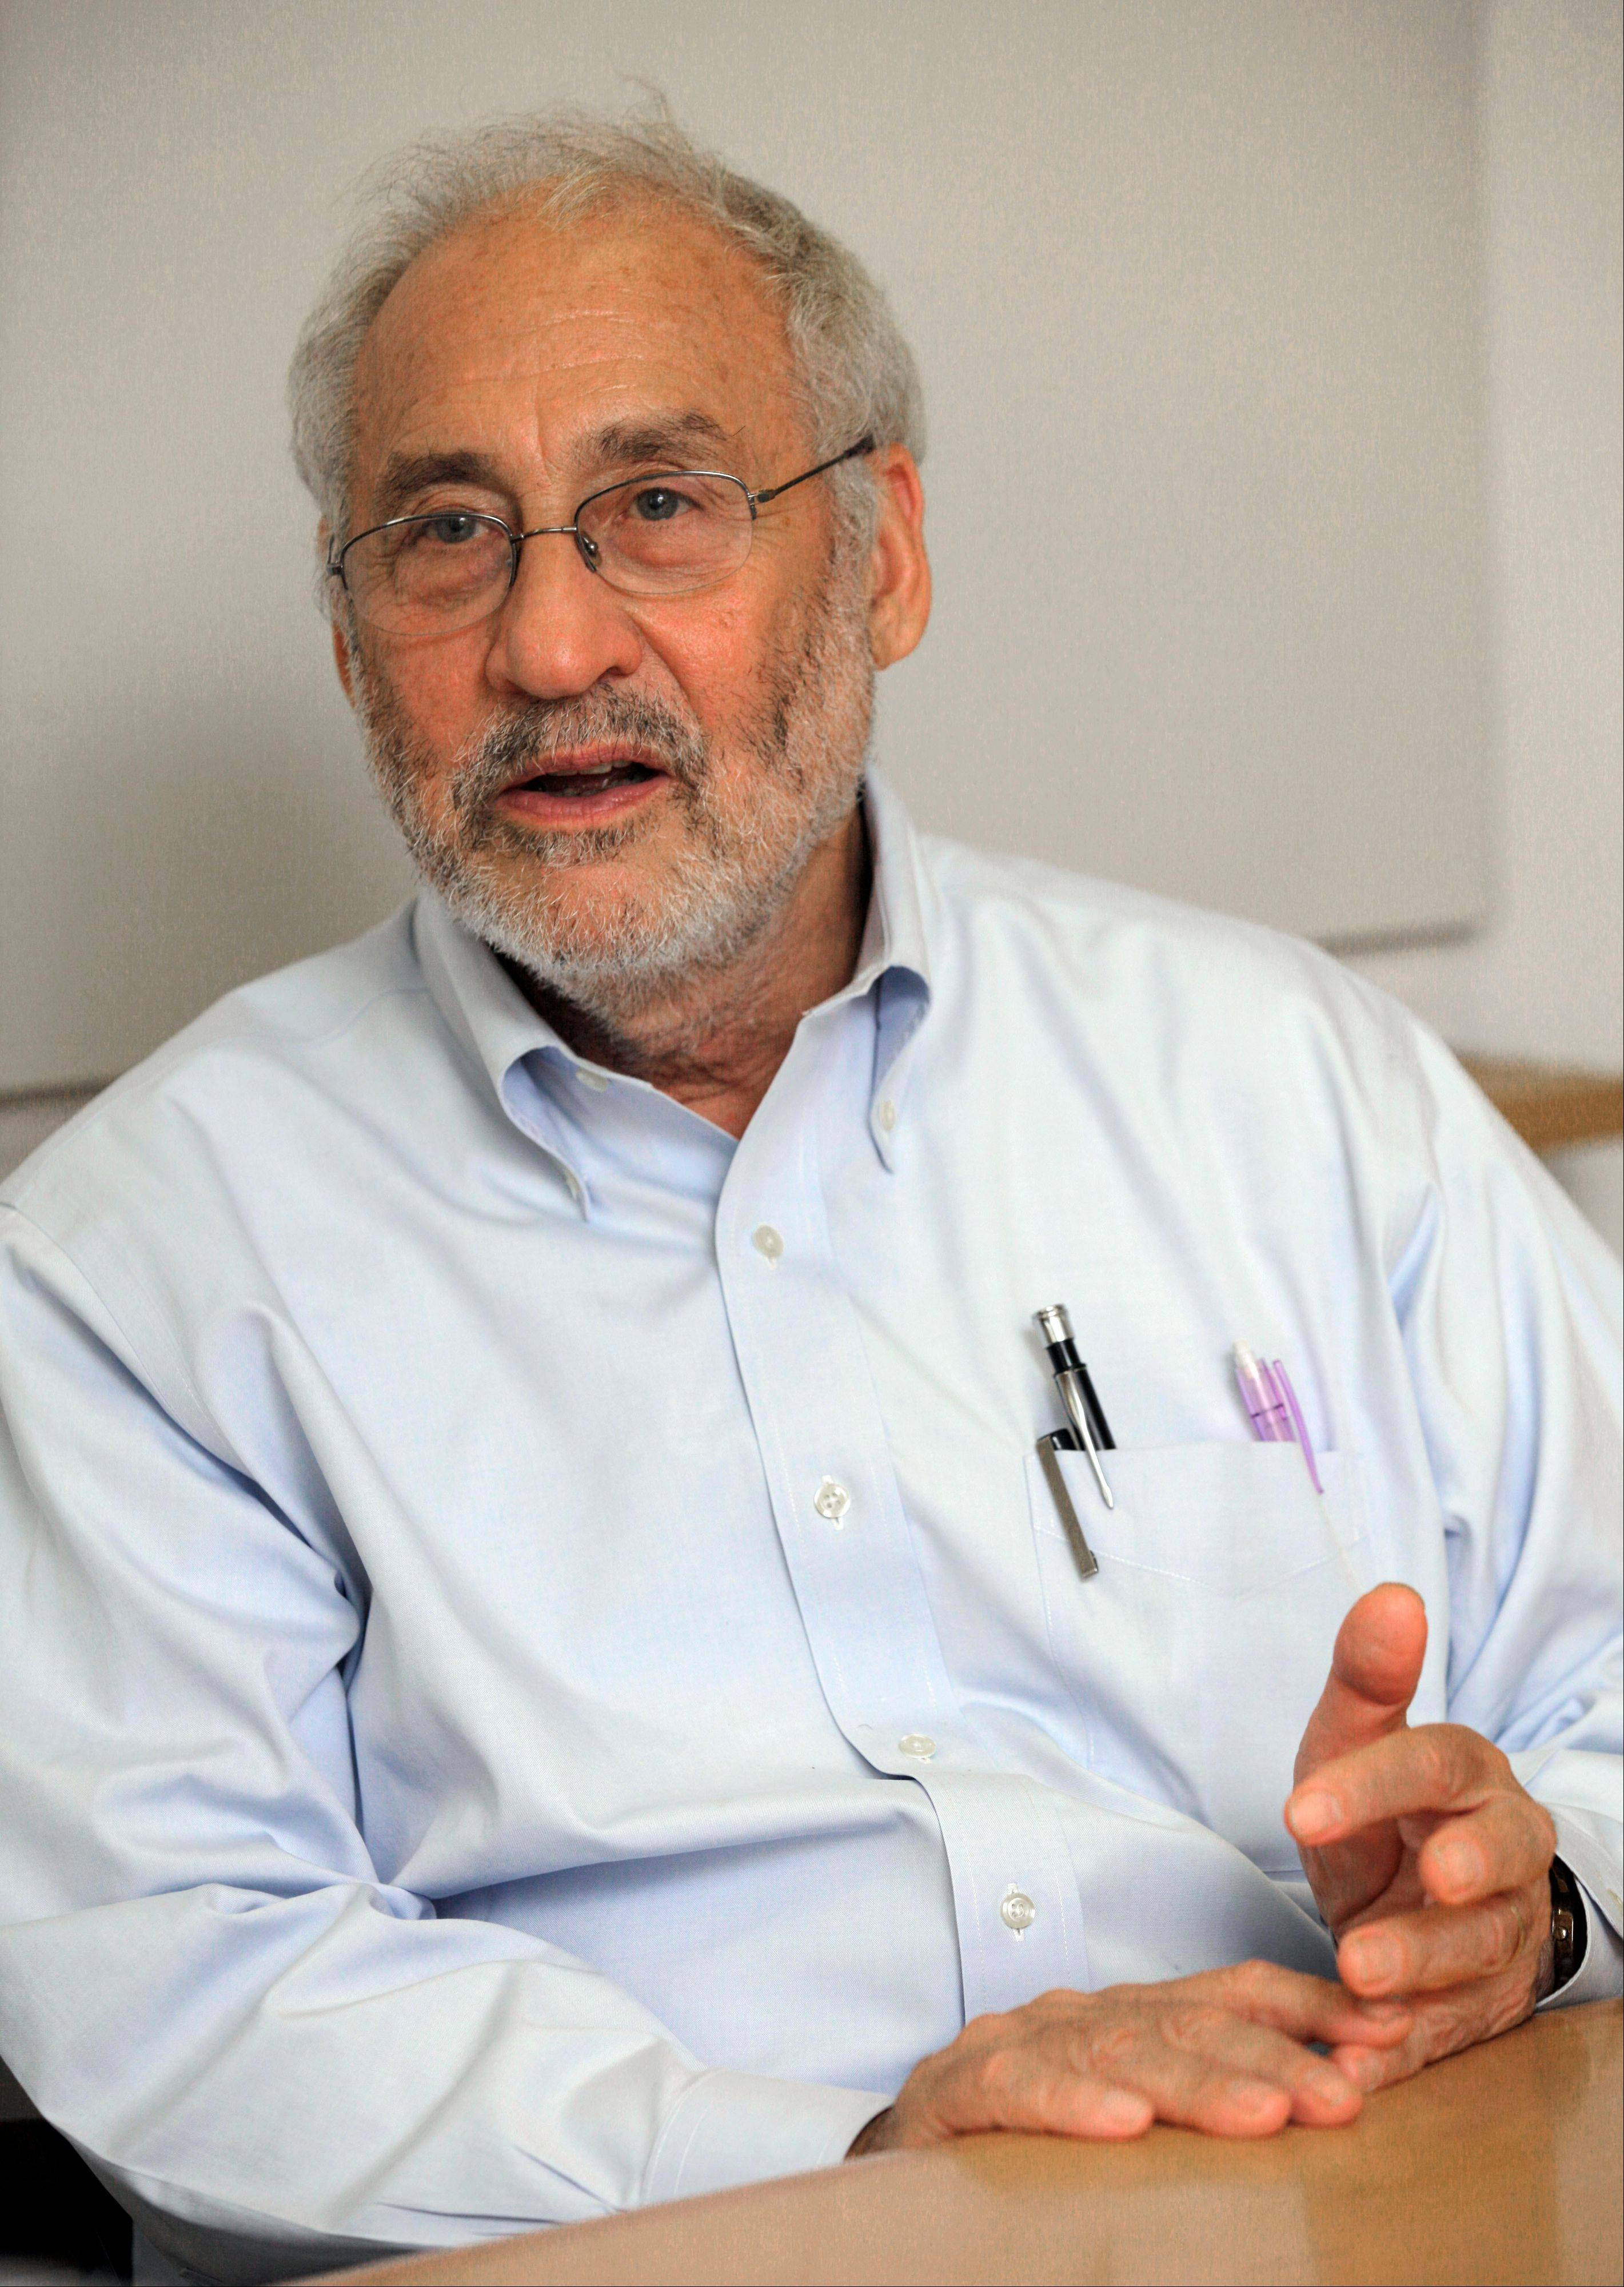 Joseph Stiglitz is a winner of the Nobel Prize in Economics.